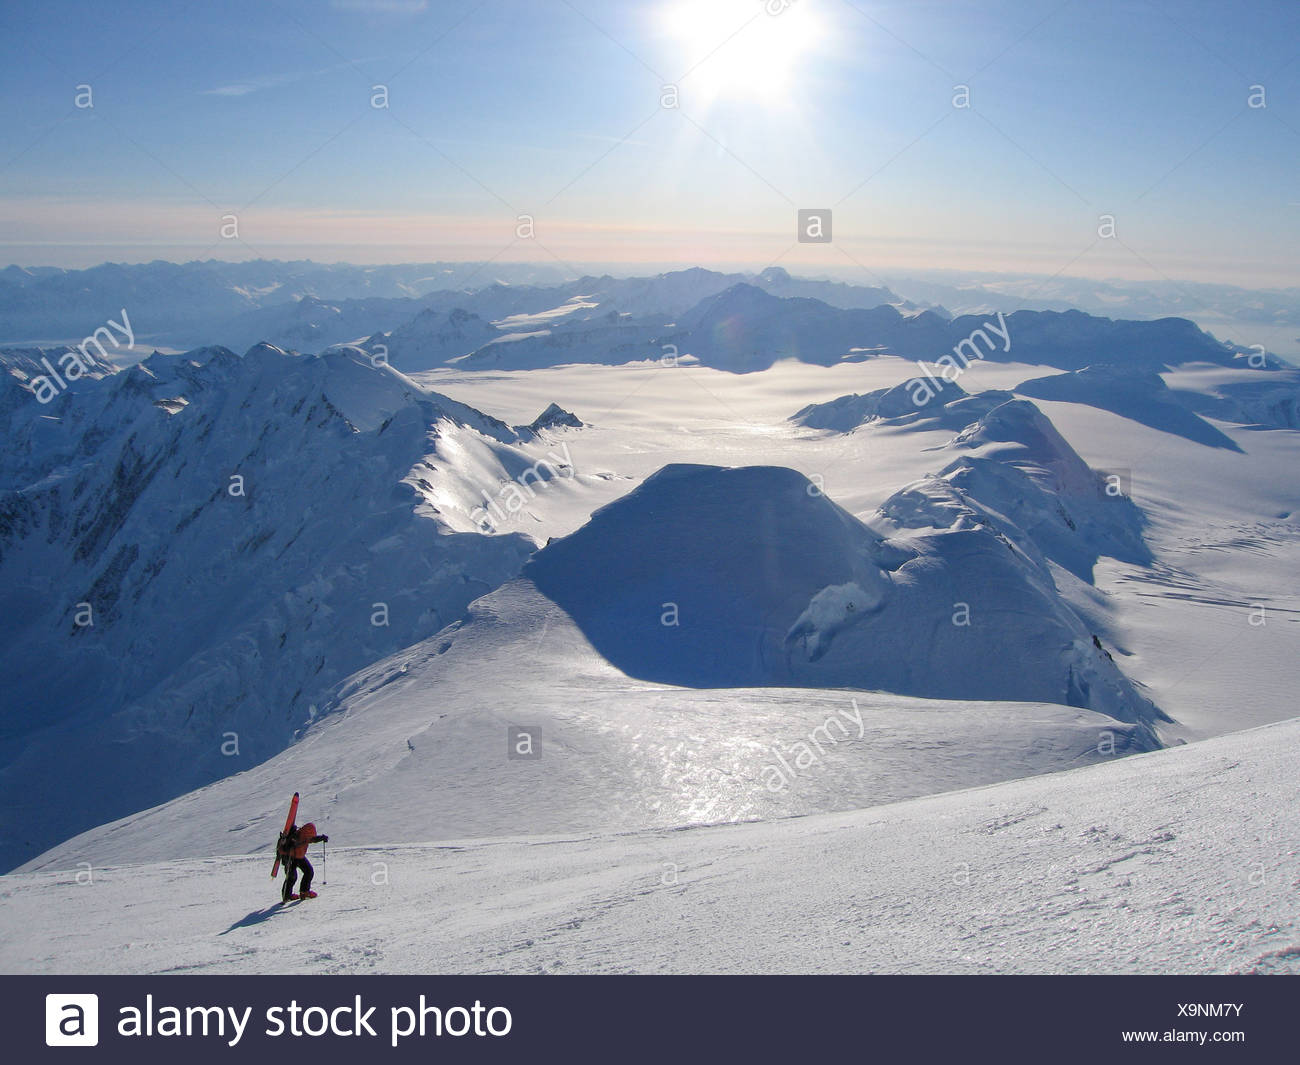 A ski mountaineer ascends the upper reaches of Mount Marcus Baker, the highest peak in the Chugach mountains, in the winter. - Stock Image